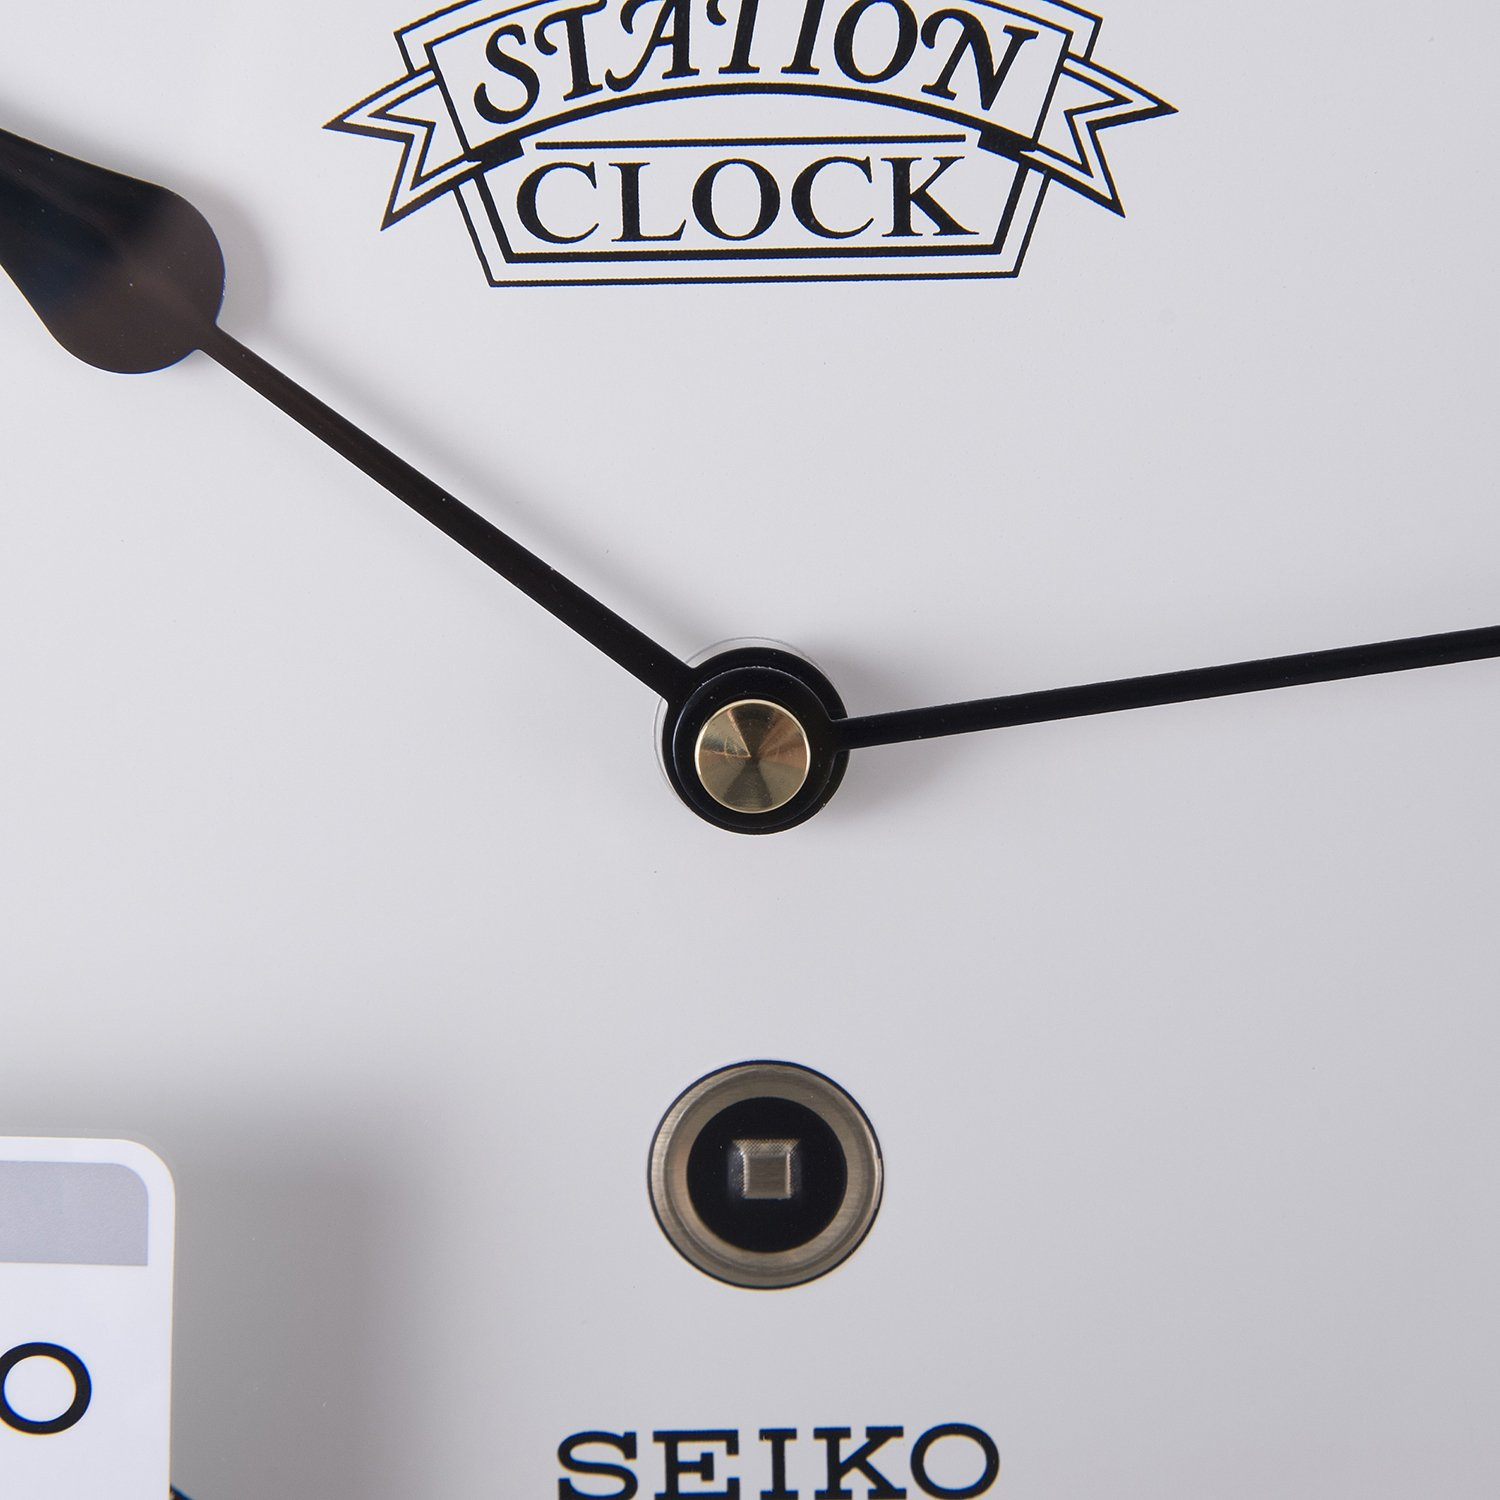 Buy Seiko Wall Clock 314 Cm X 314 Cm X 44 Cm Brown Qxa143bn